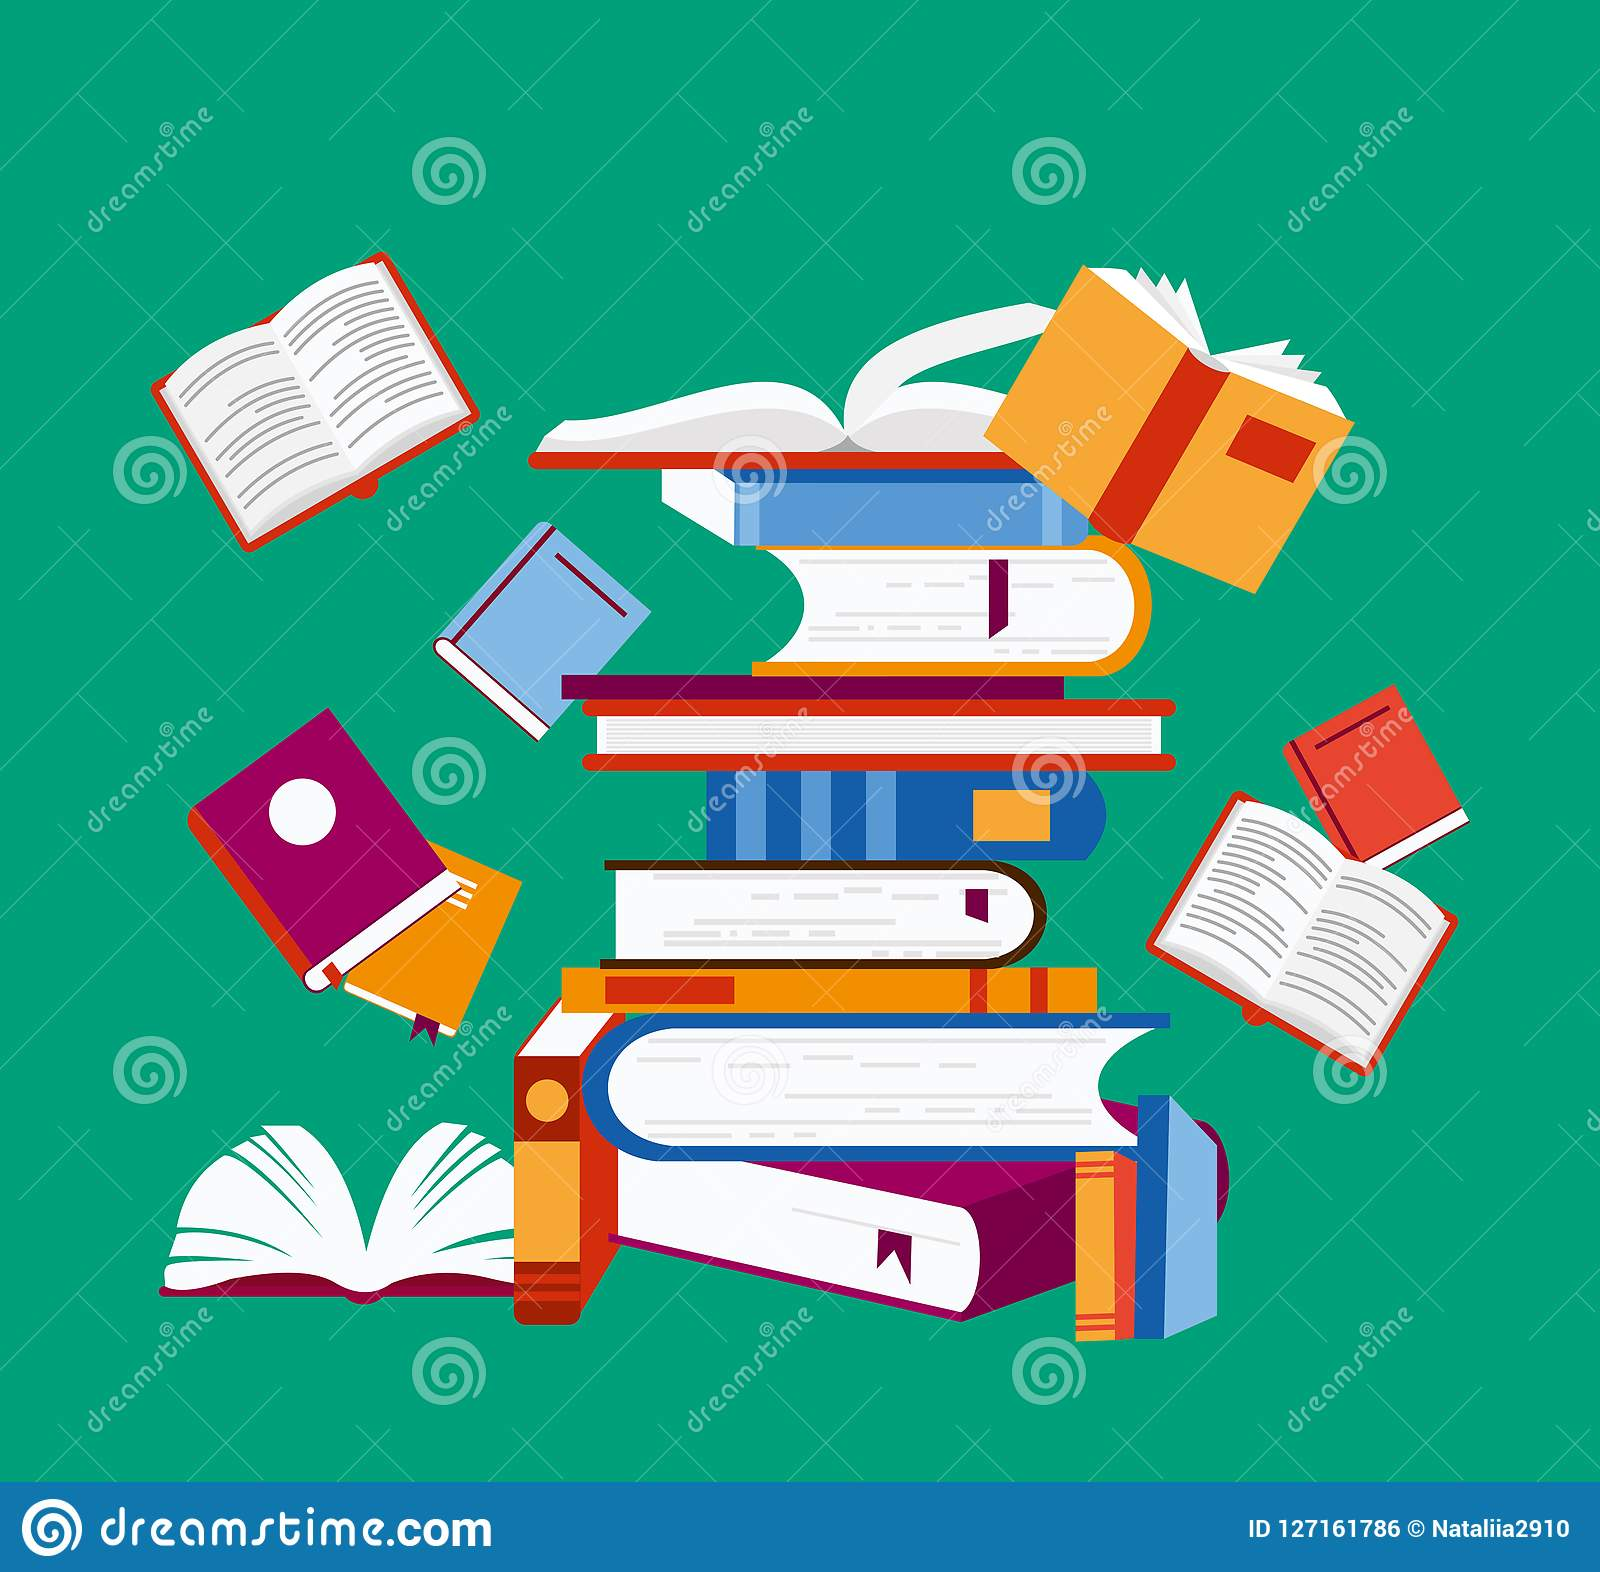 Vector illustration of reading concept. A lot of books on green background, poster in flat cartoon design.